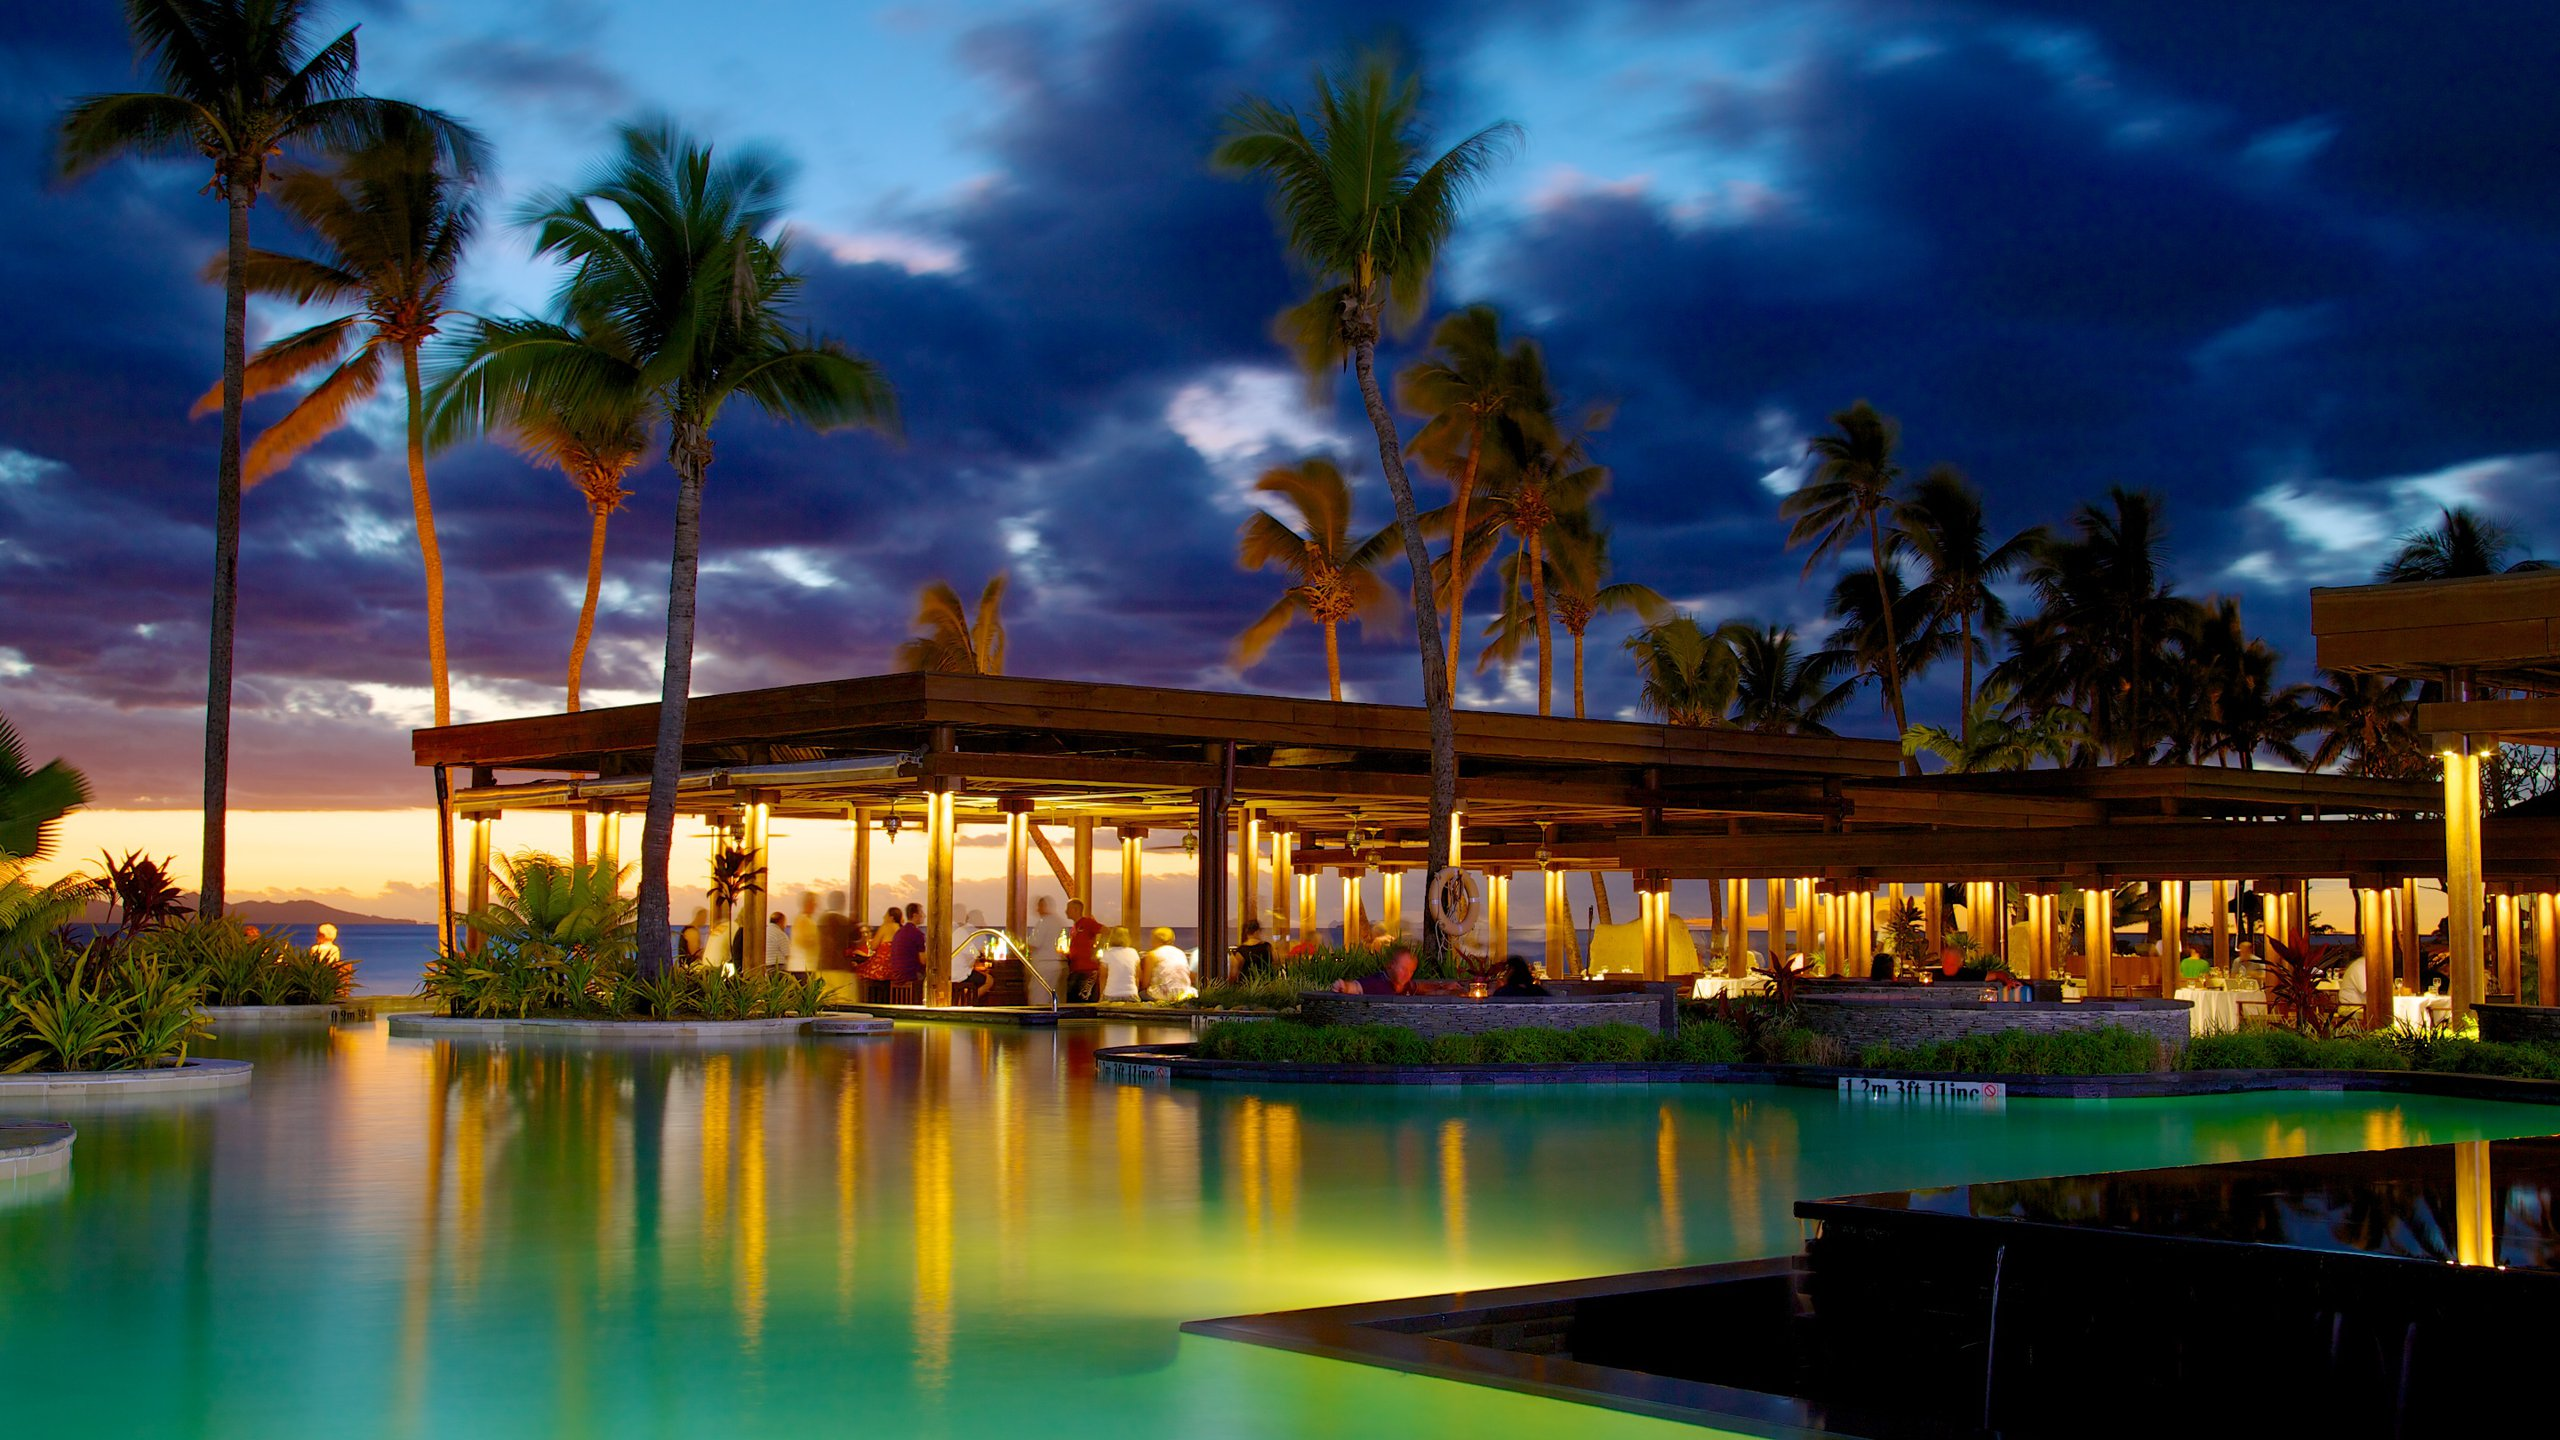 Top Hotels In Nadi From 14 Free Cancellation On Select Hotels Expedia